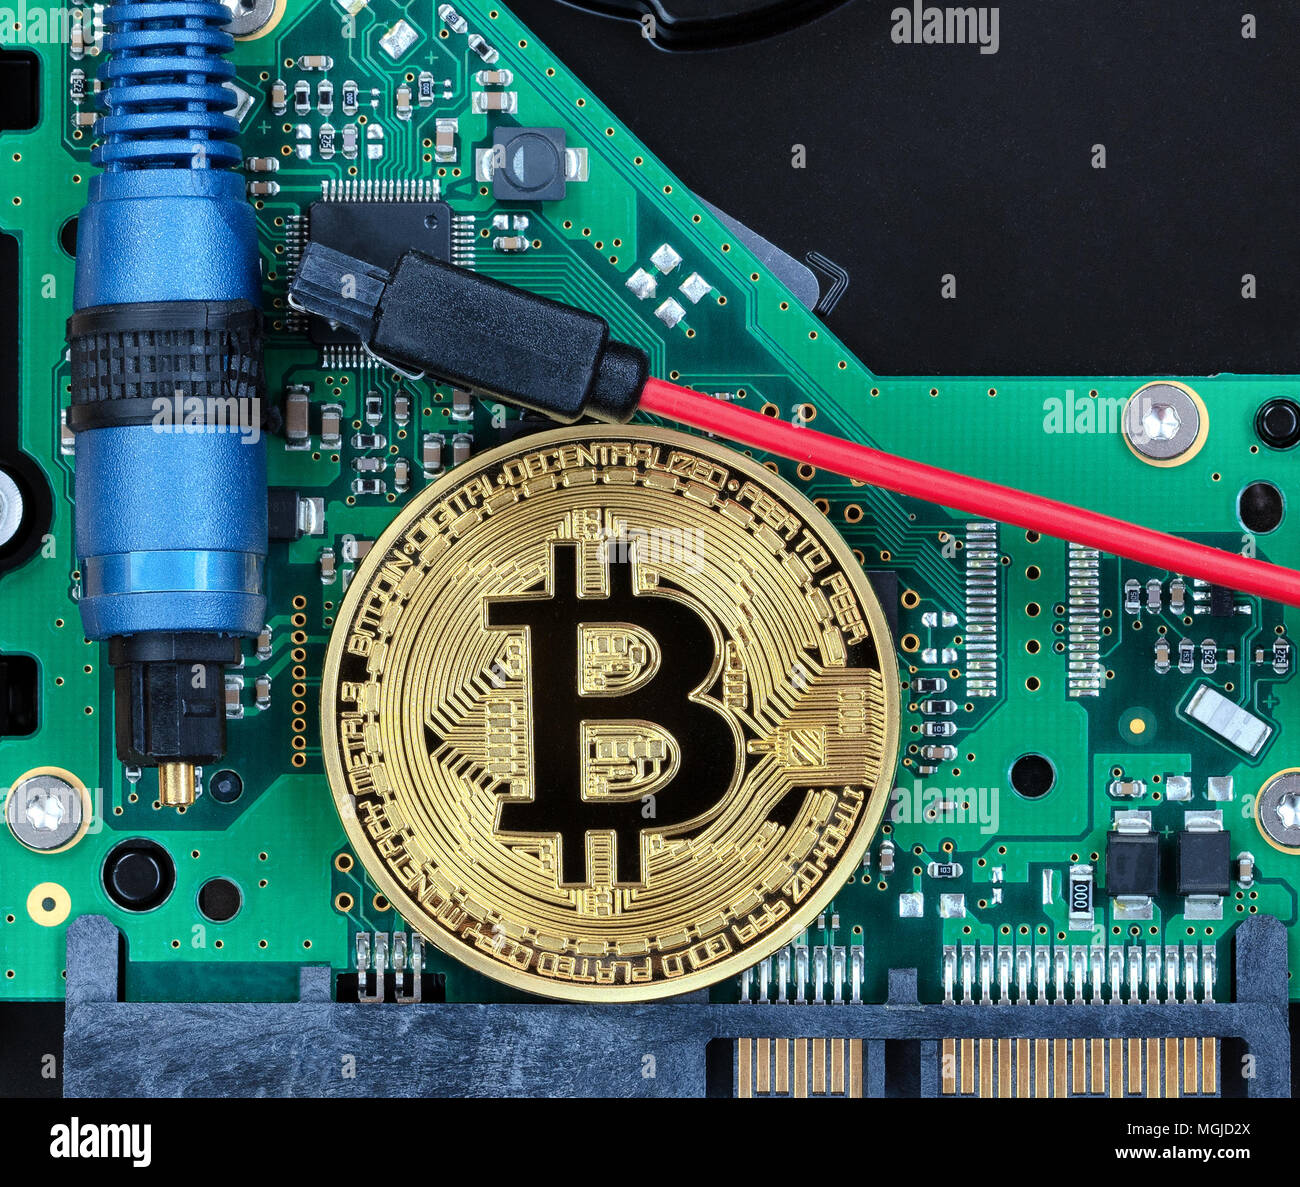 Overhead view of future currency with computer technology - Stock Image